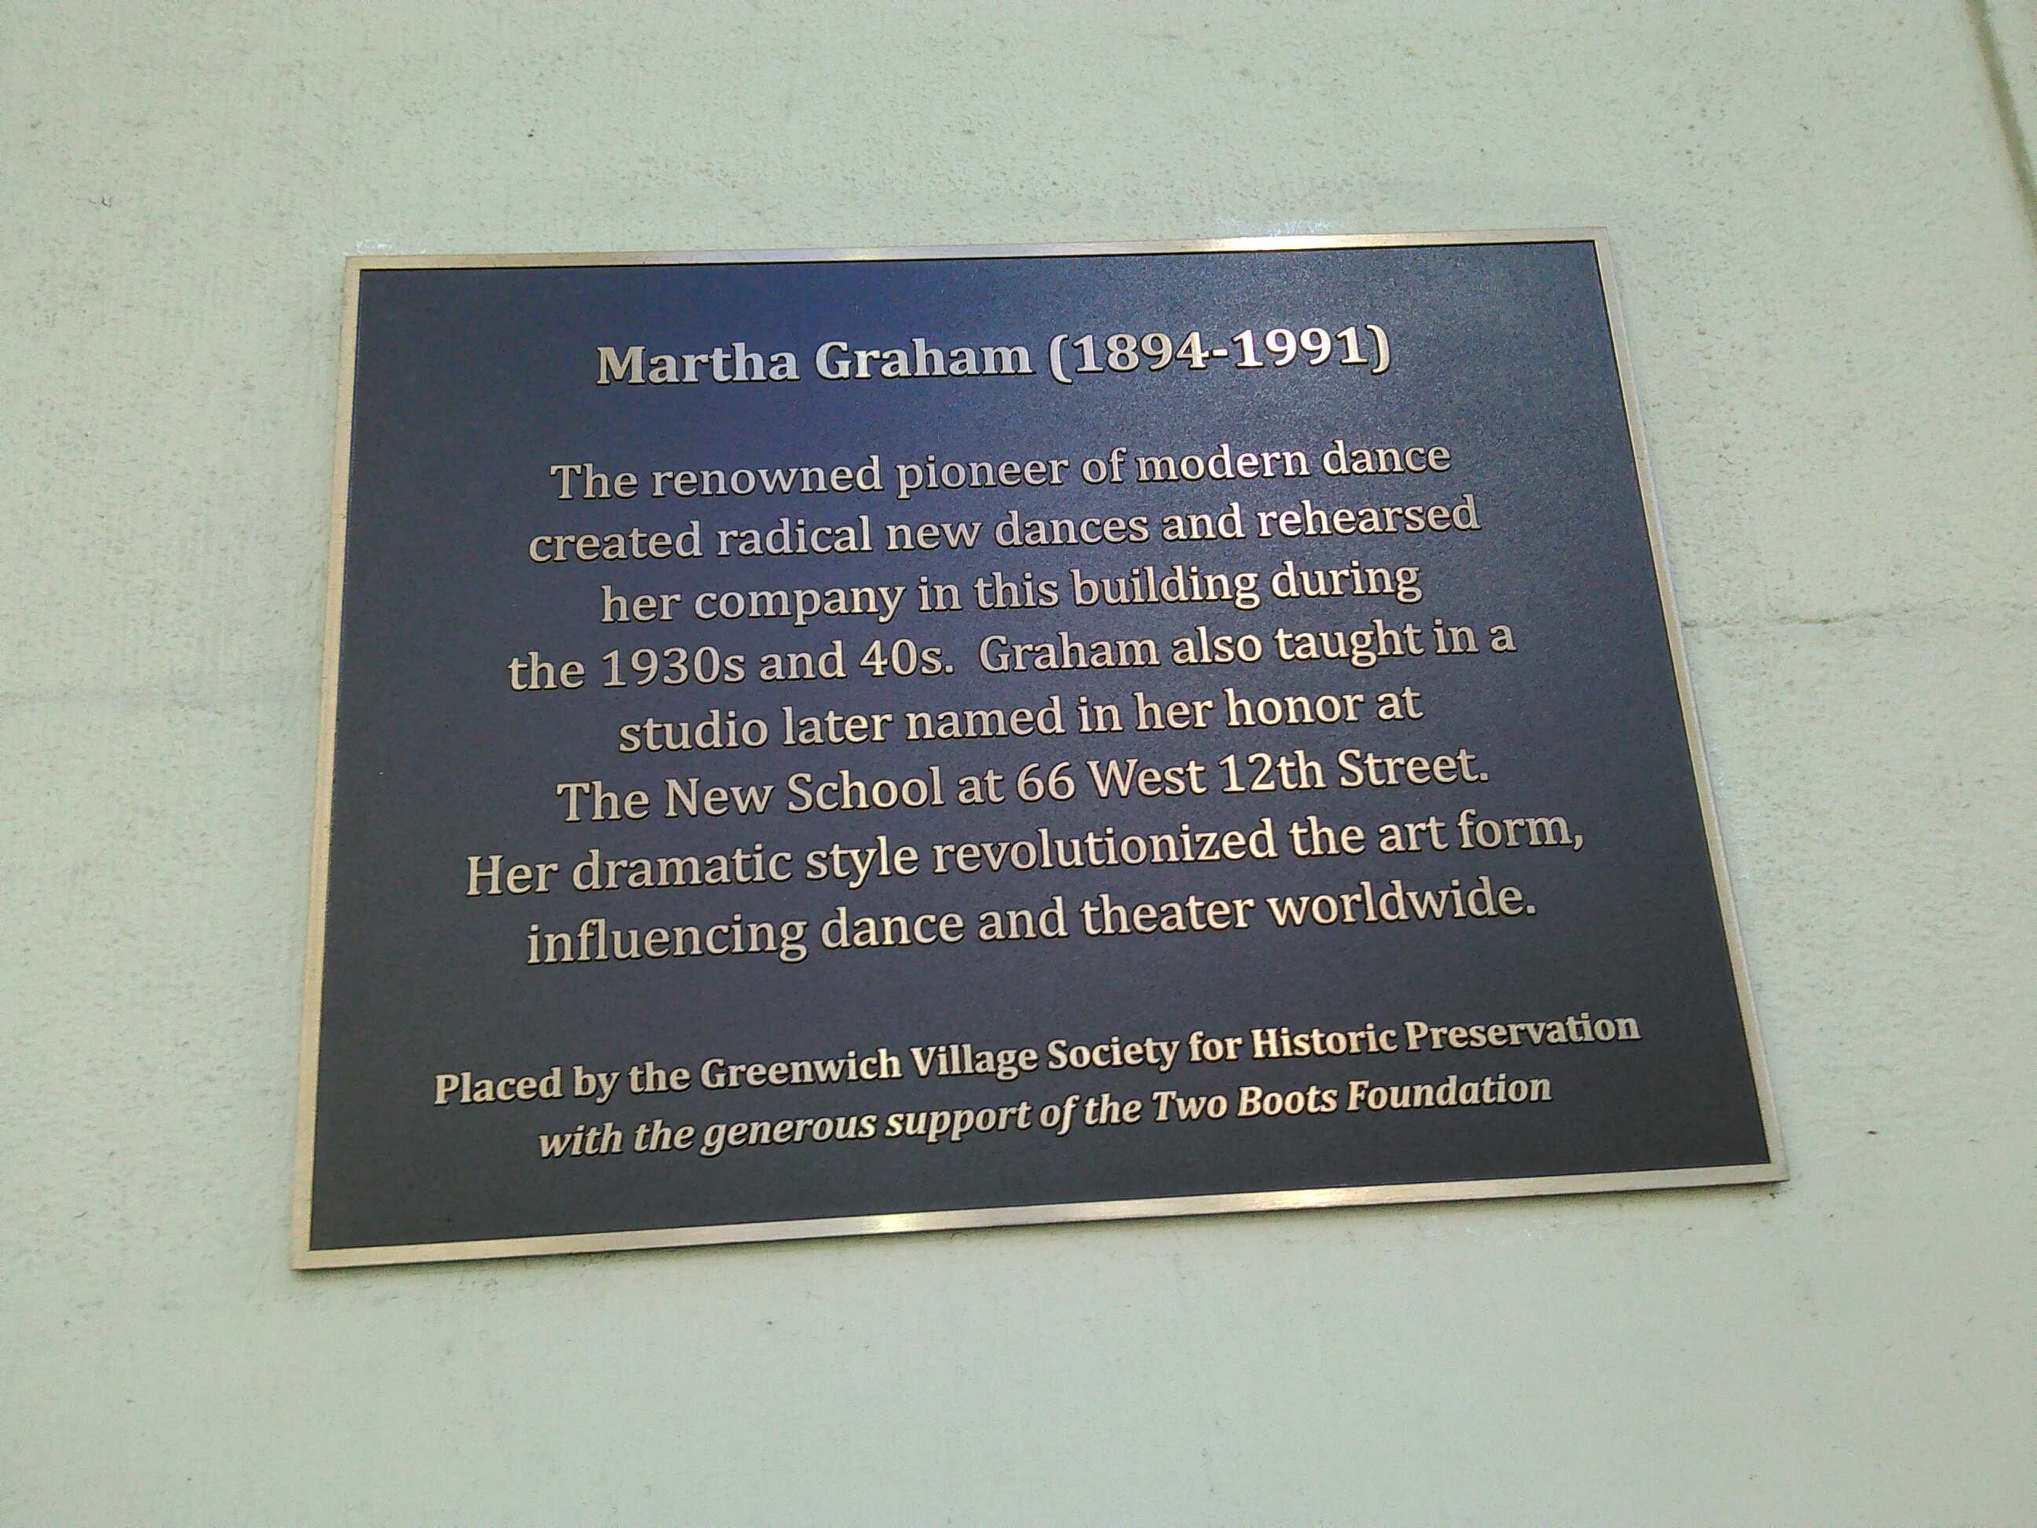 A plaque outside 66 Fifth Avenue, where Martha Graham established her dance company in 1926.